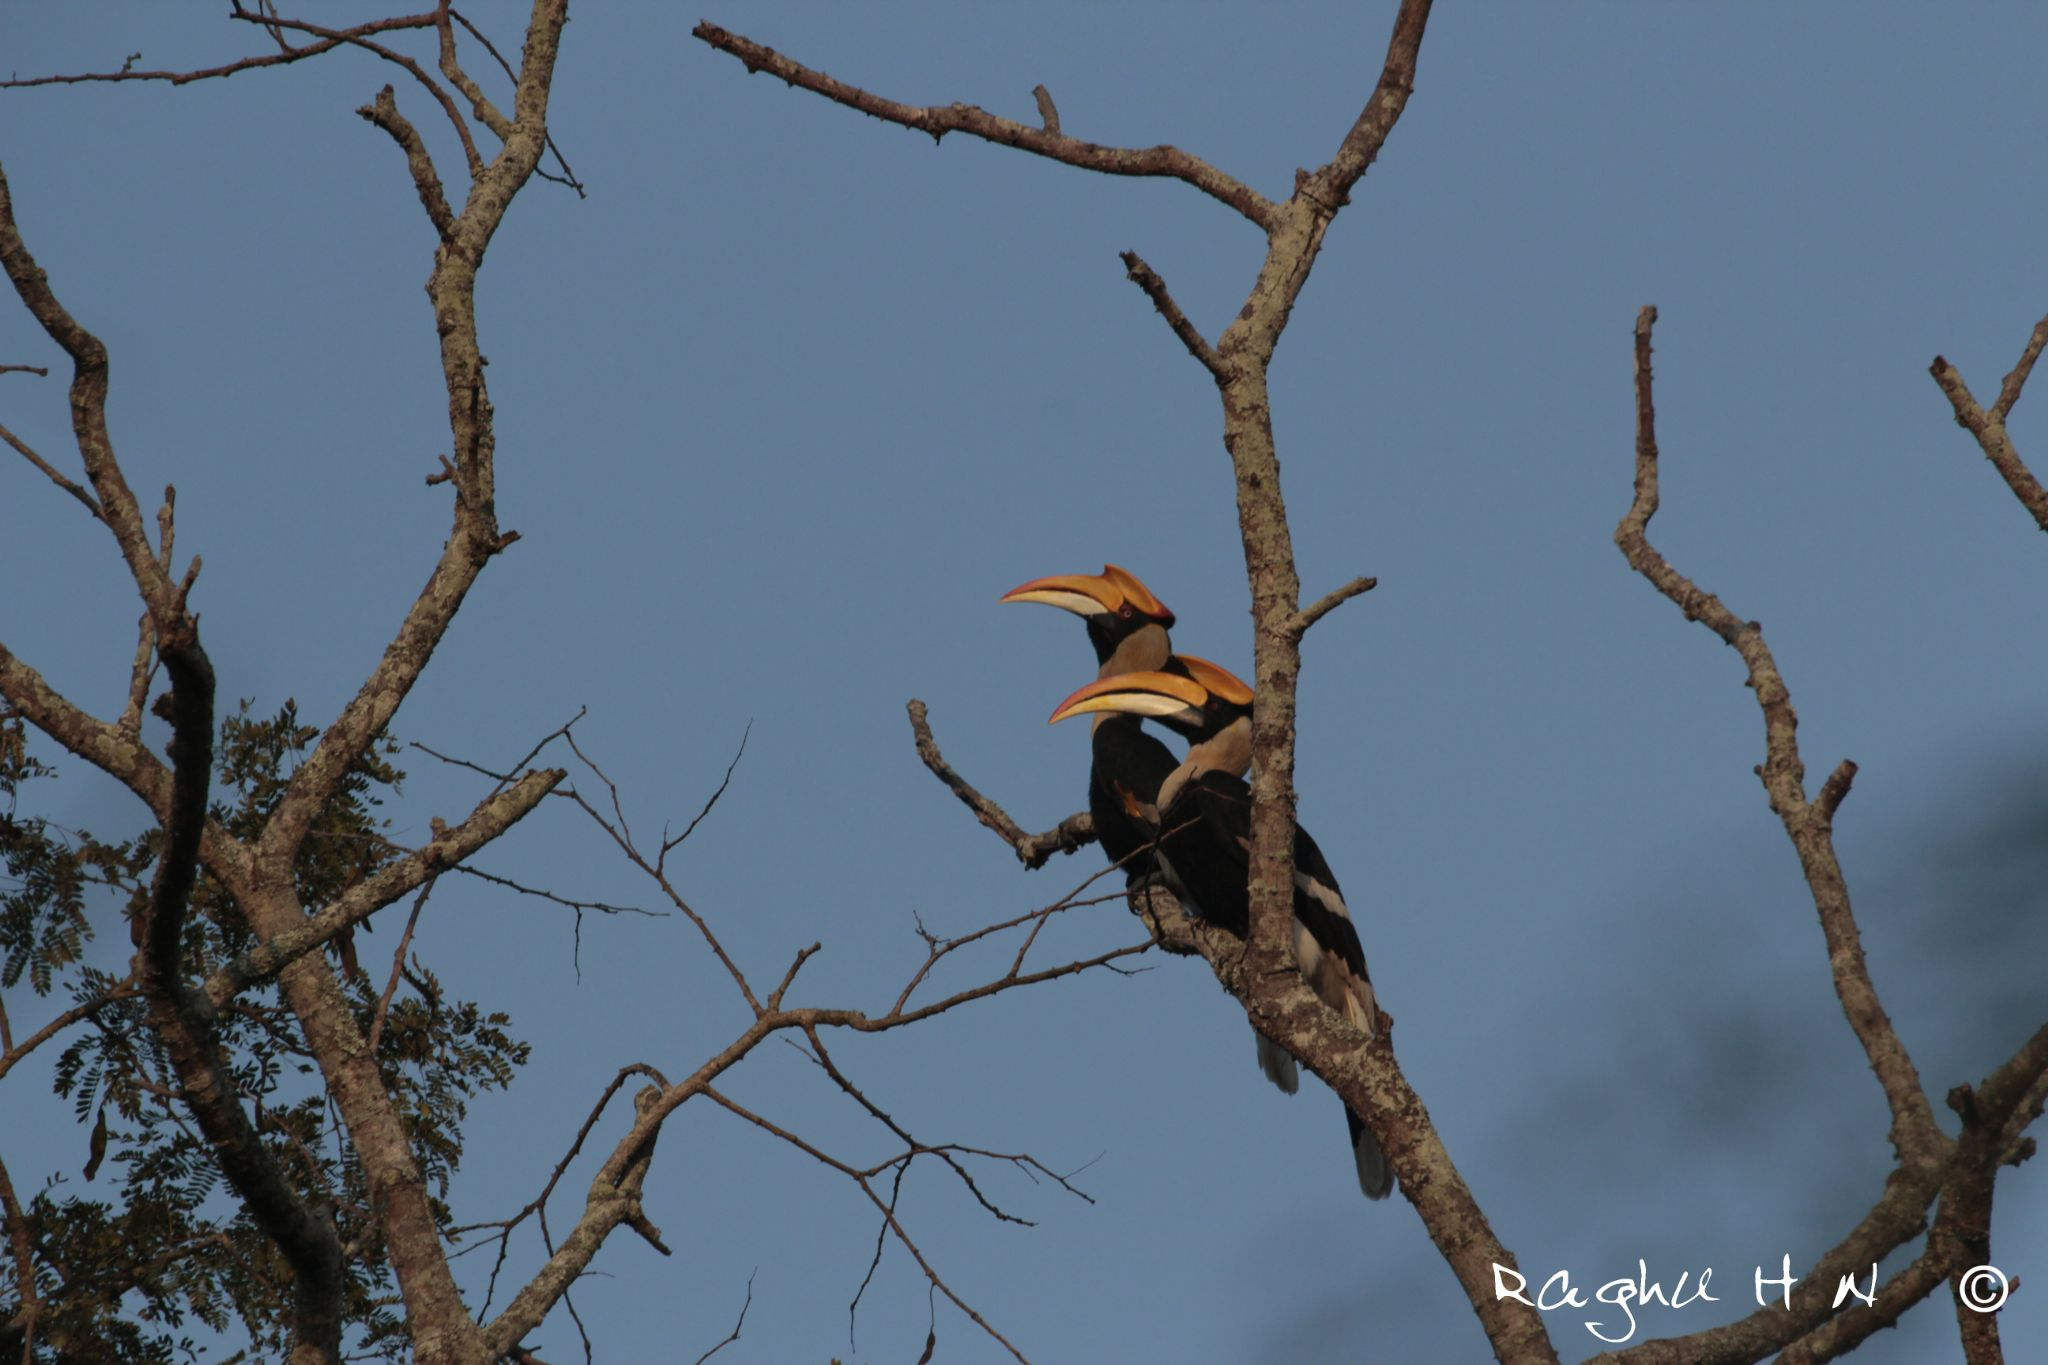 Pair of Great Hornbills with a fresh early morning light by Raghu Narayan